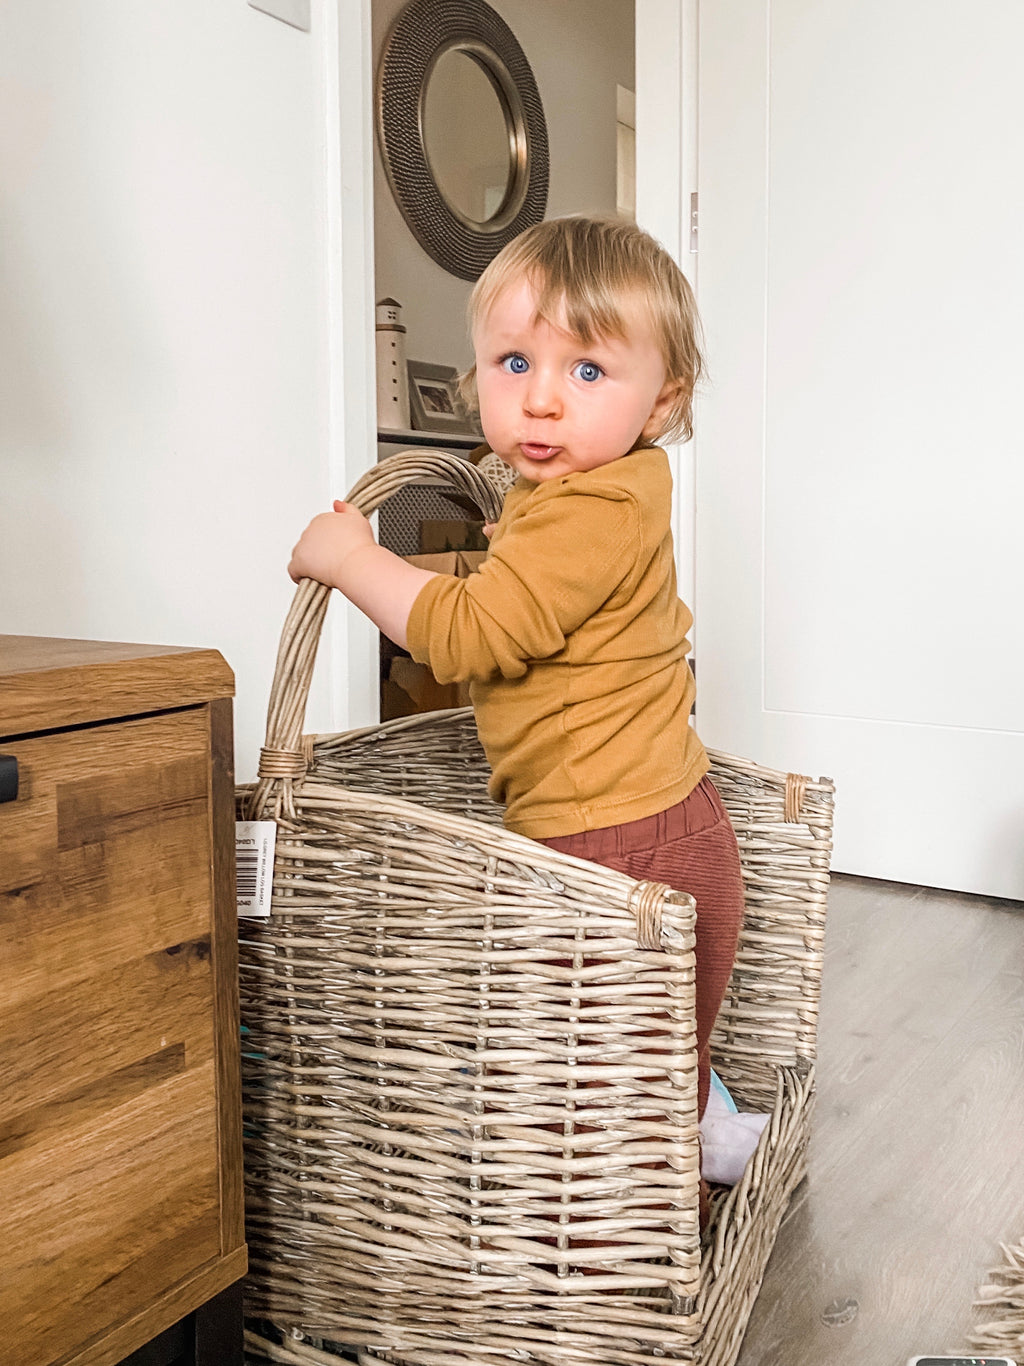 LOG BASKET - ARRIVING 1ST FEBRUARY